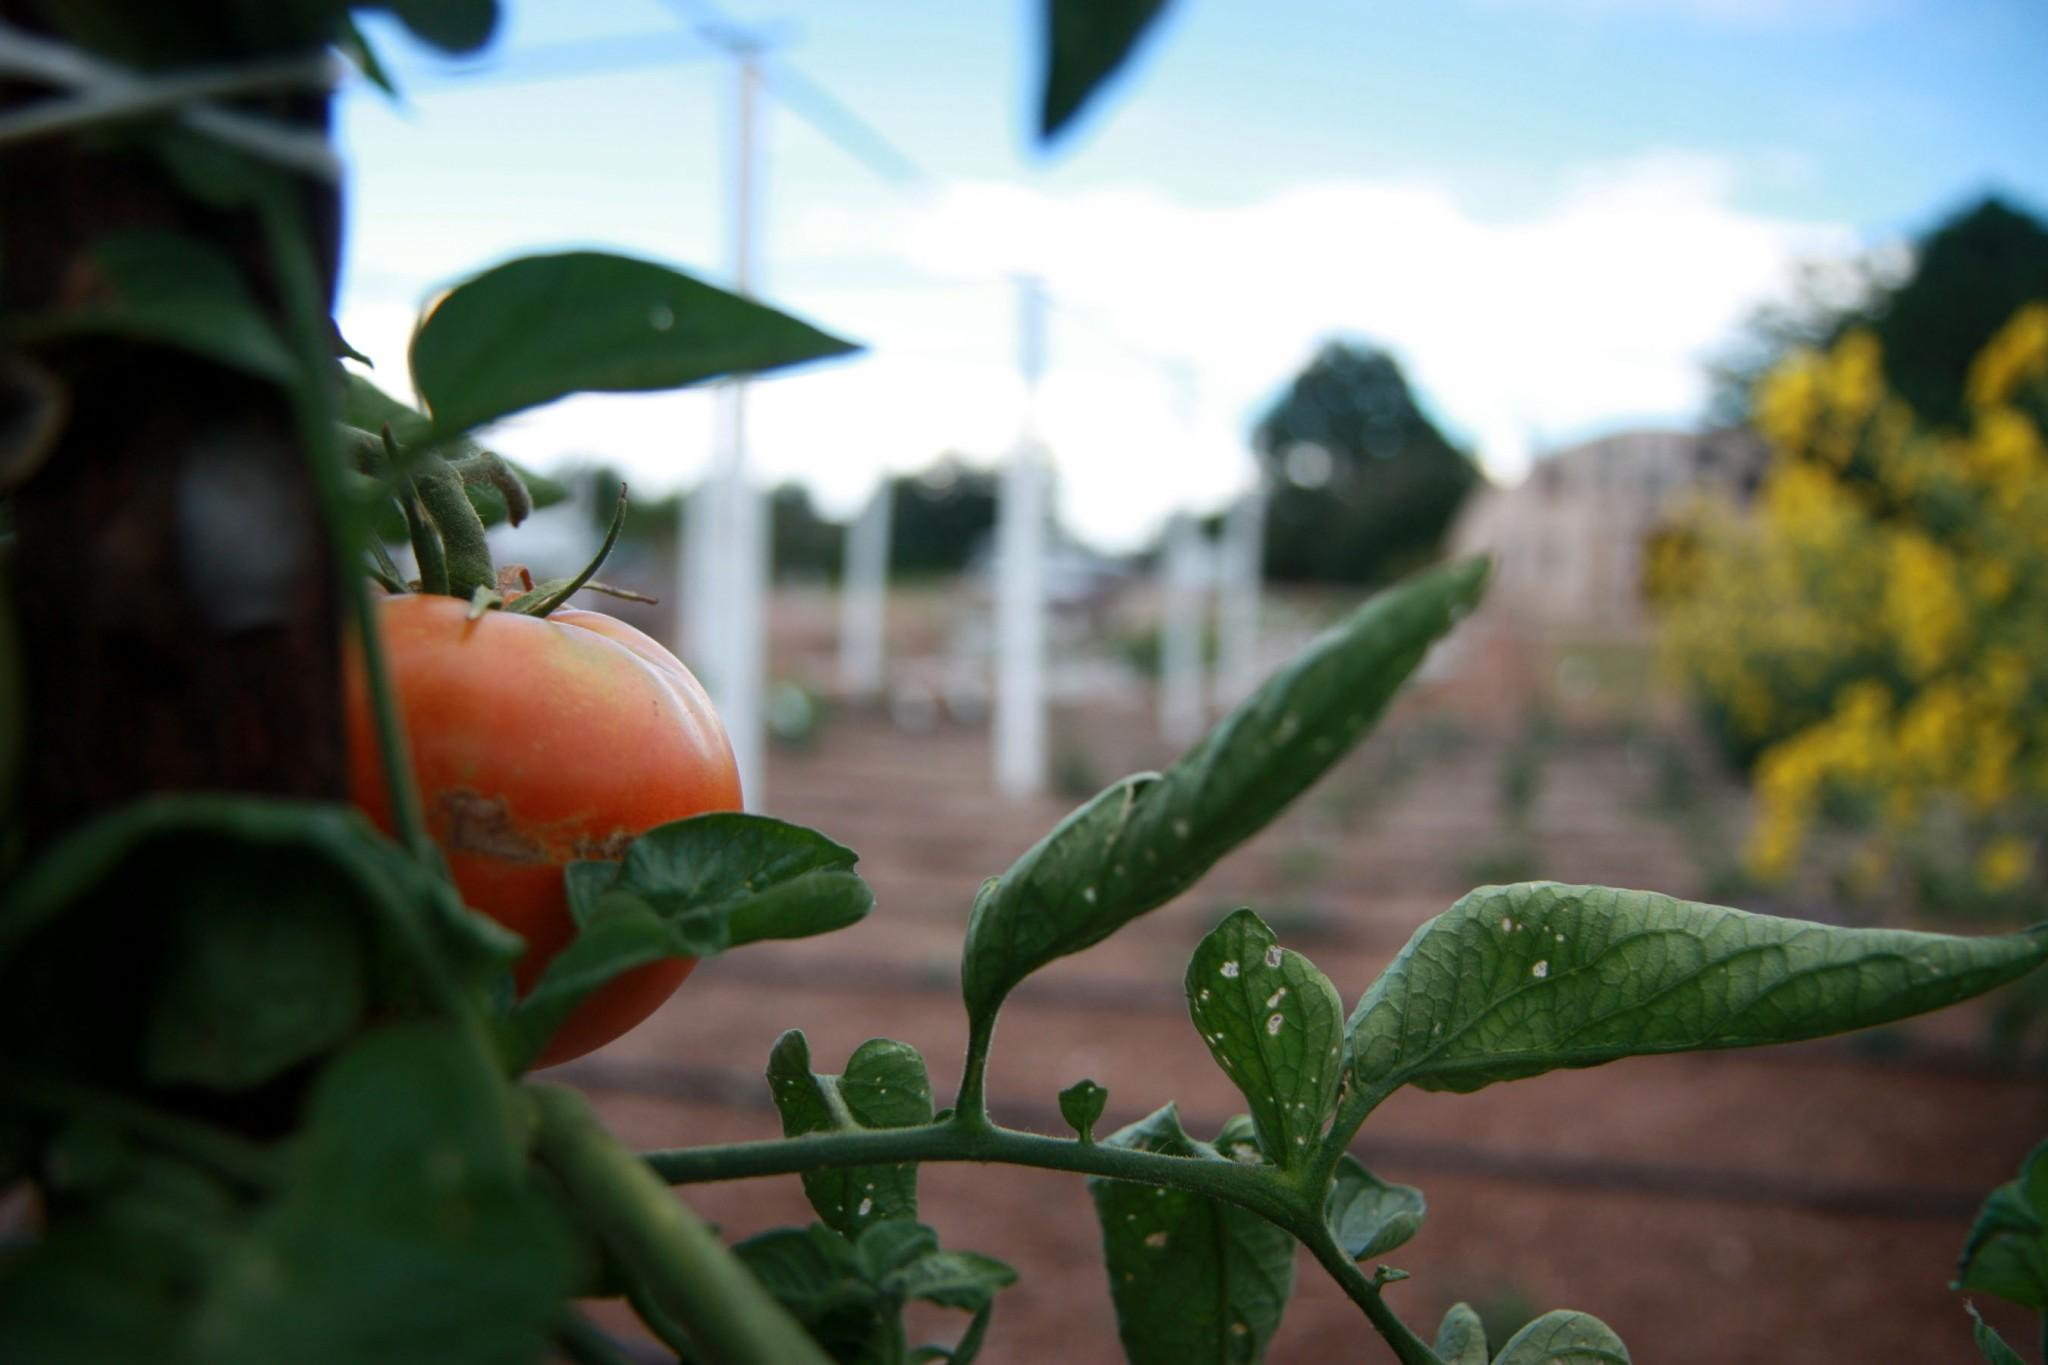 The sustainable farm, gardens, and greenhouses on the North West side of campus, greatly enjoyed by CSU students, may soon disappear with the construction of the new stadium.